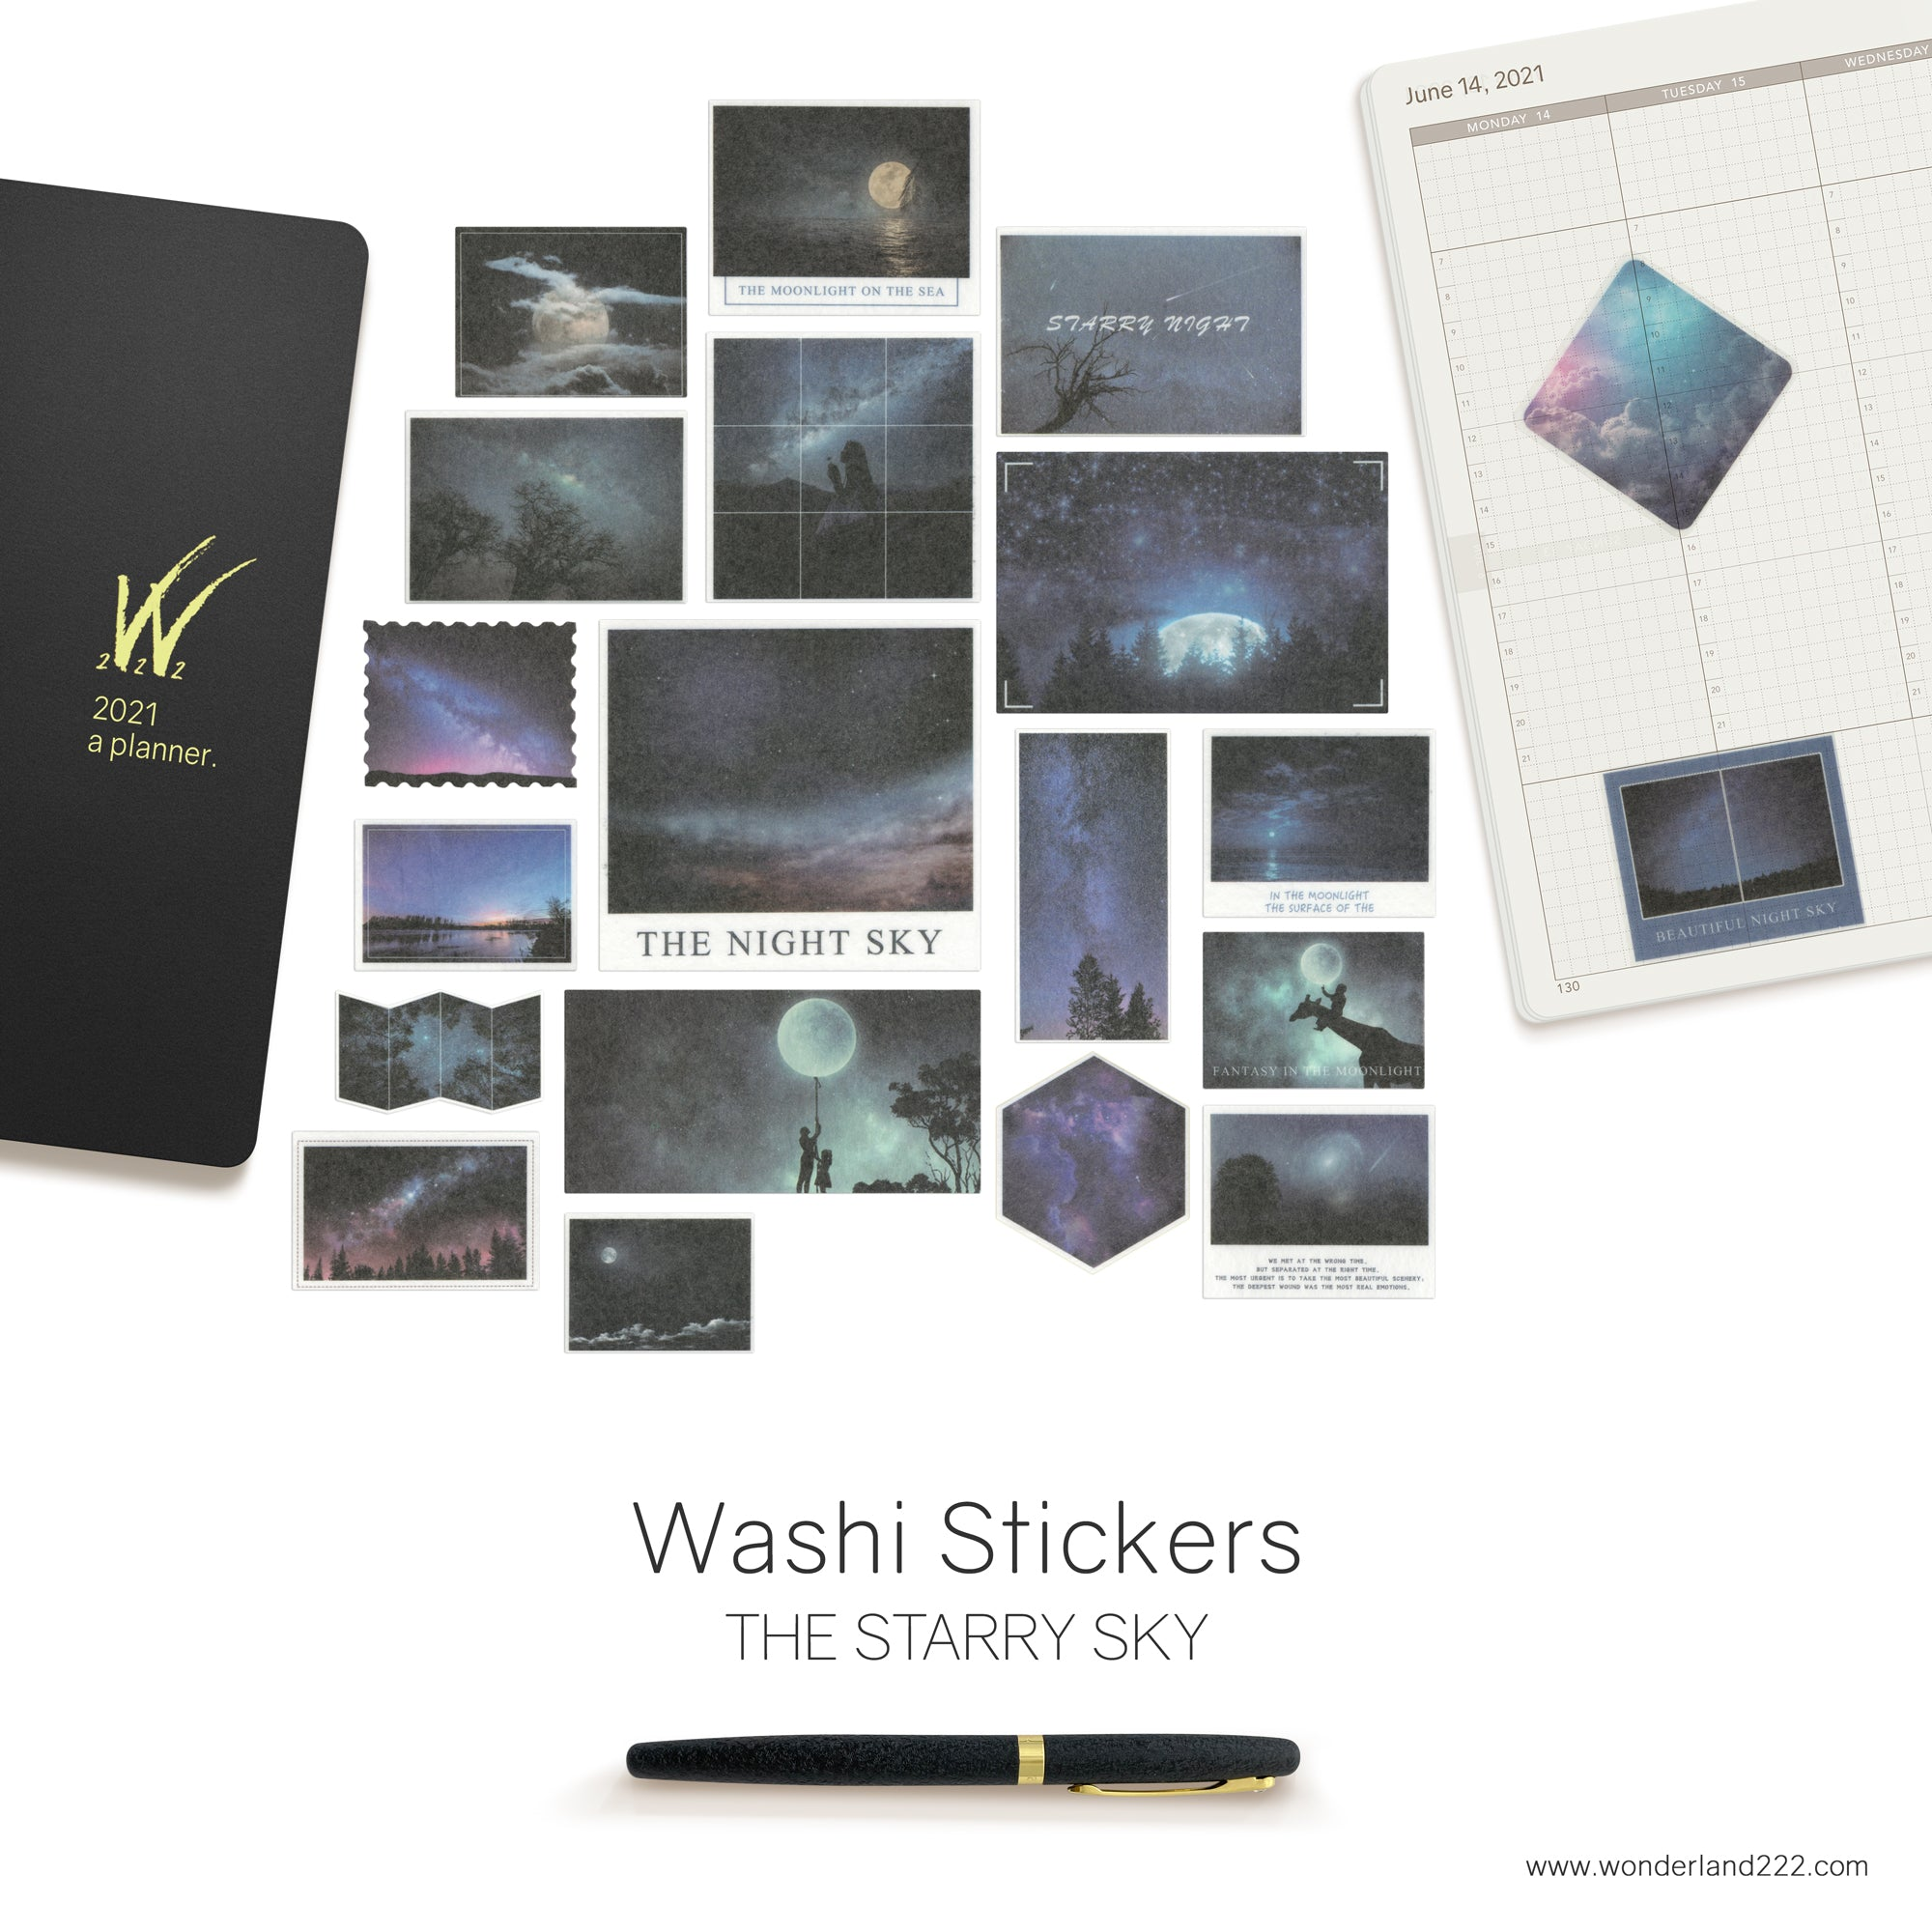 Washi Stickers